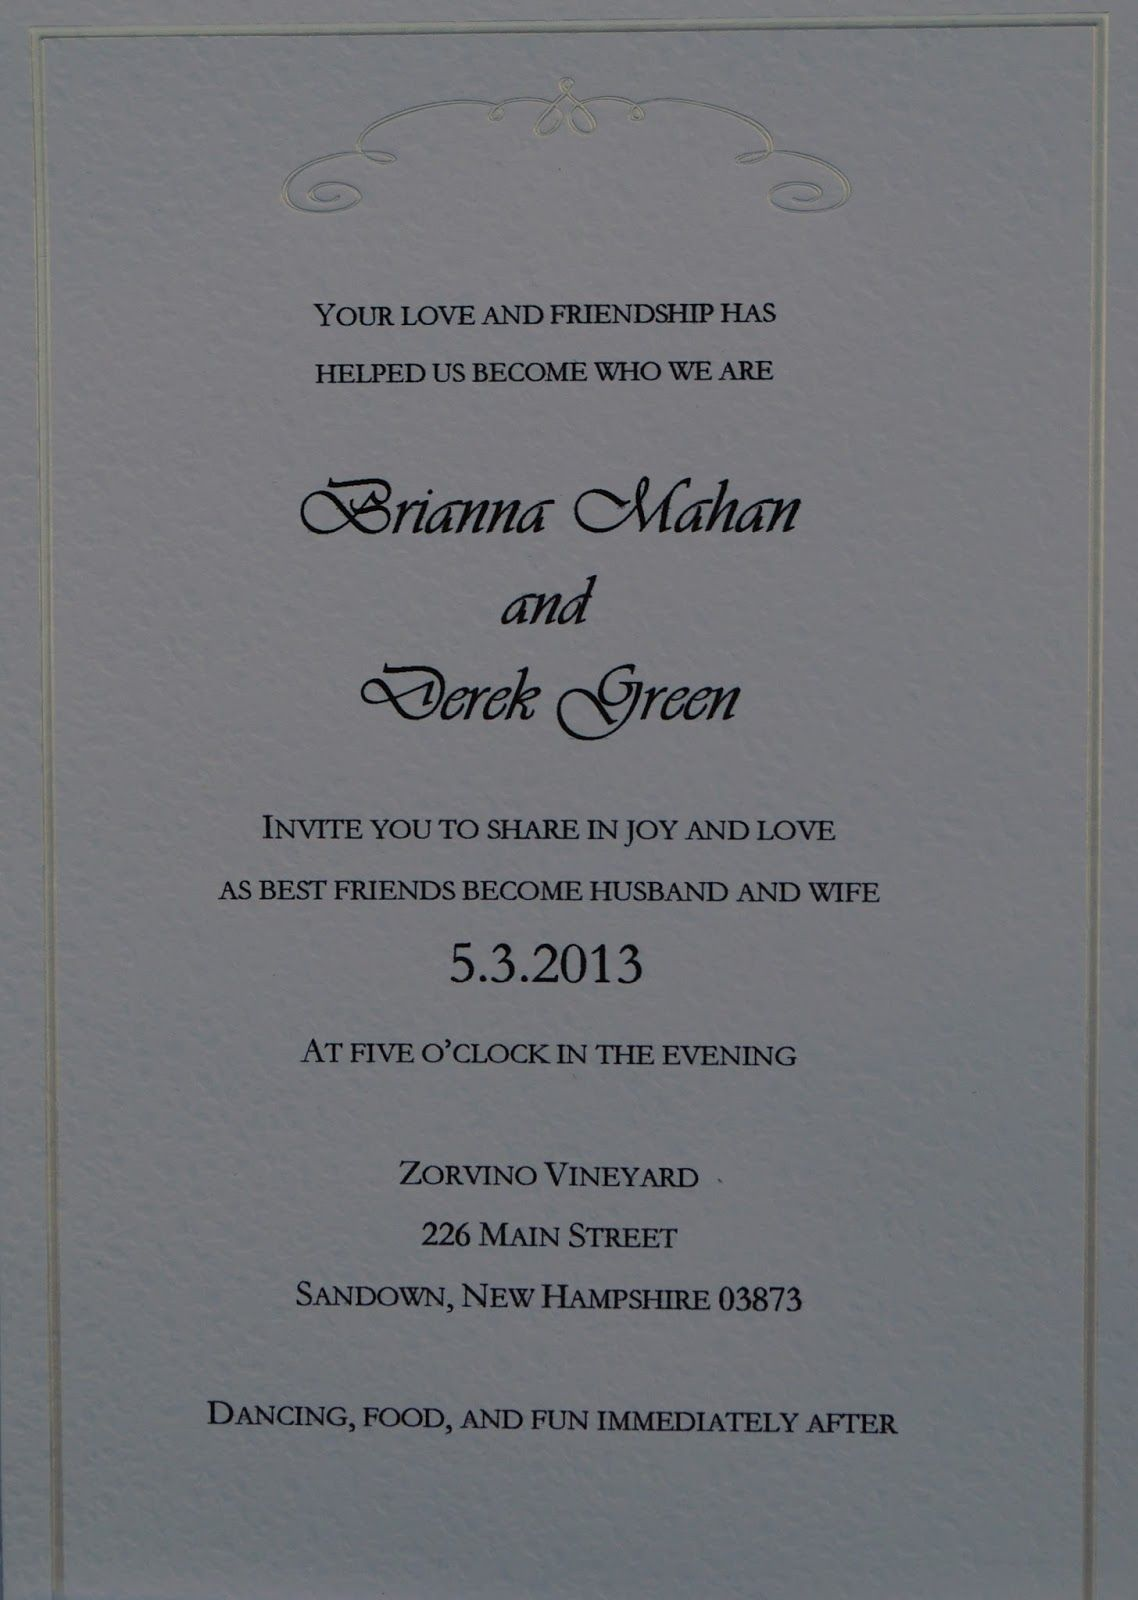 wedding renewal invitation ideas%0A  Wedding  invitation  wording  Alternative wording options